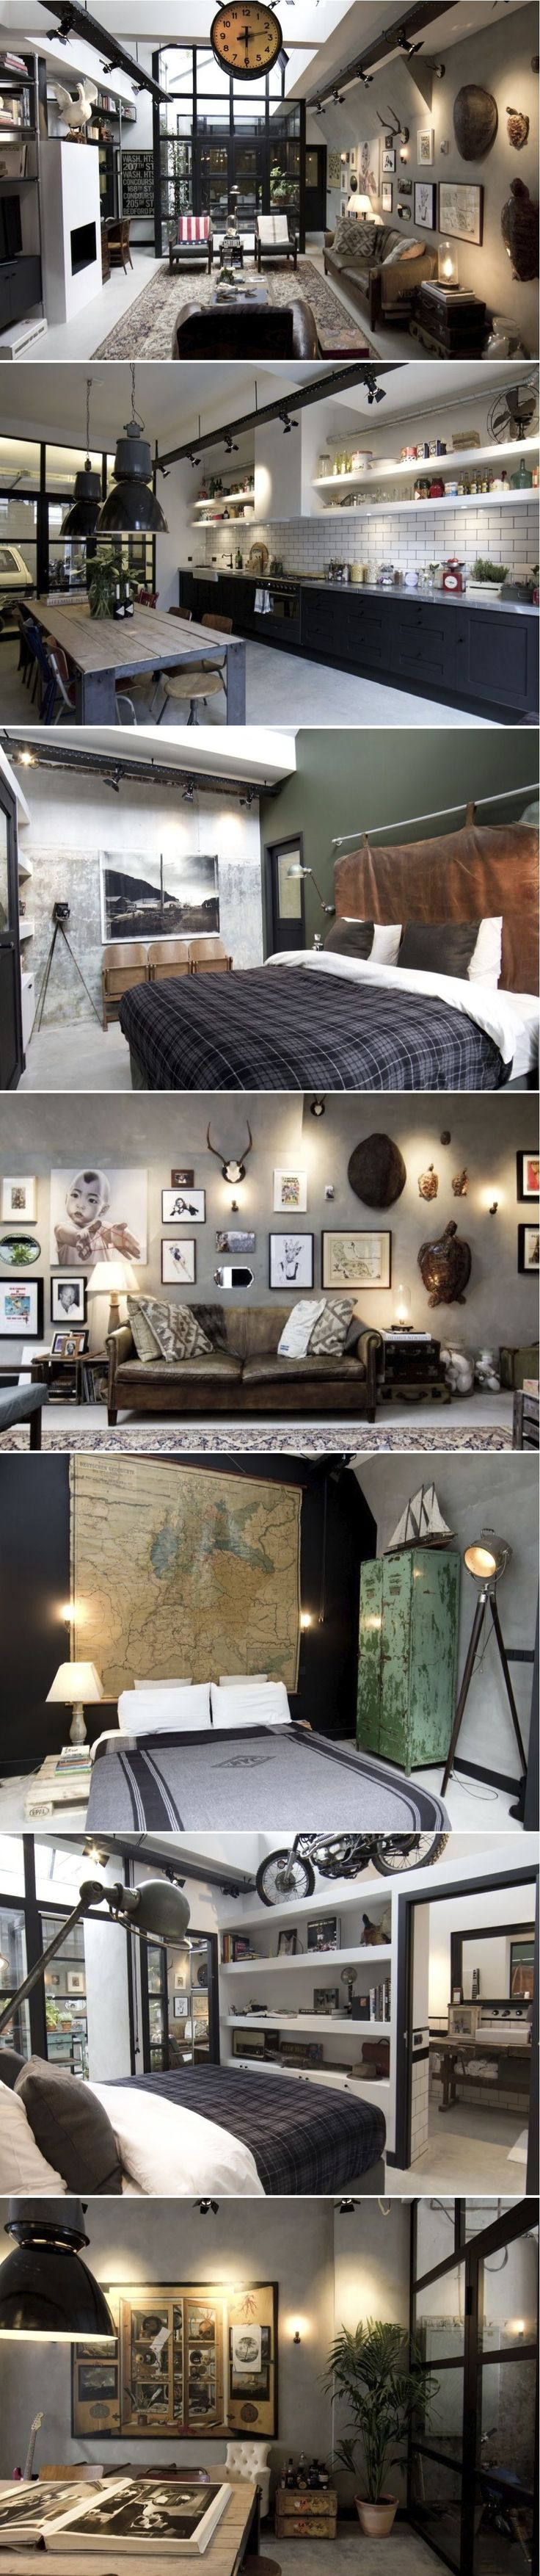 the industrial style loft ideas you've been looking for. | http://vintageindustrialstyle.com/